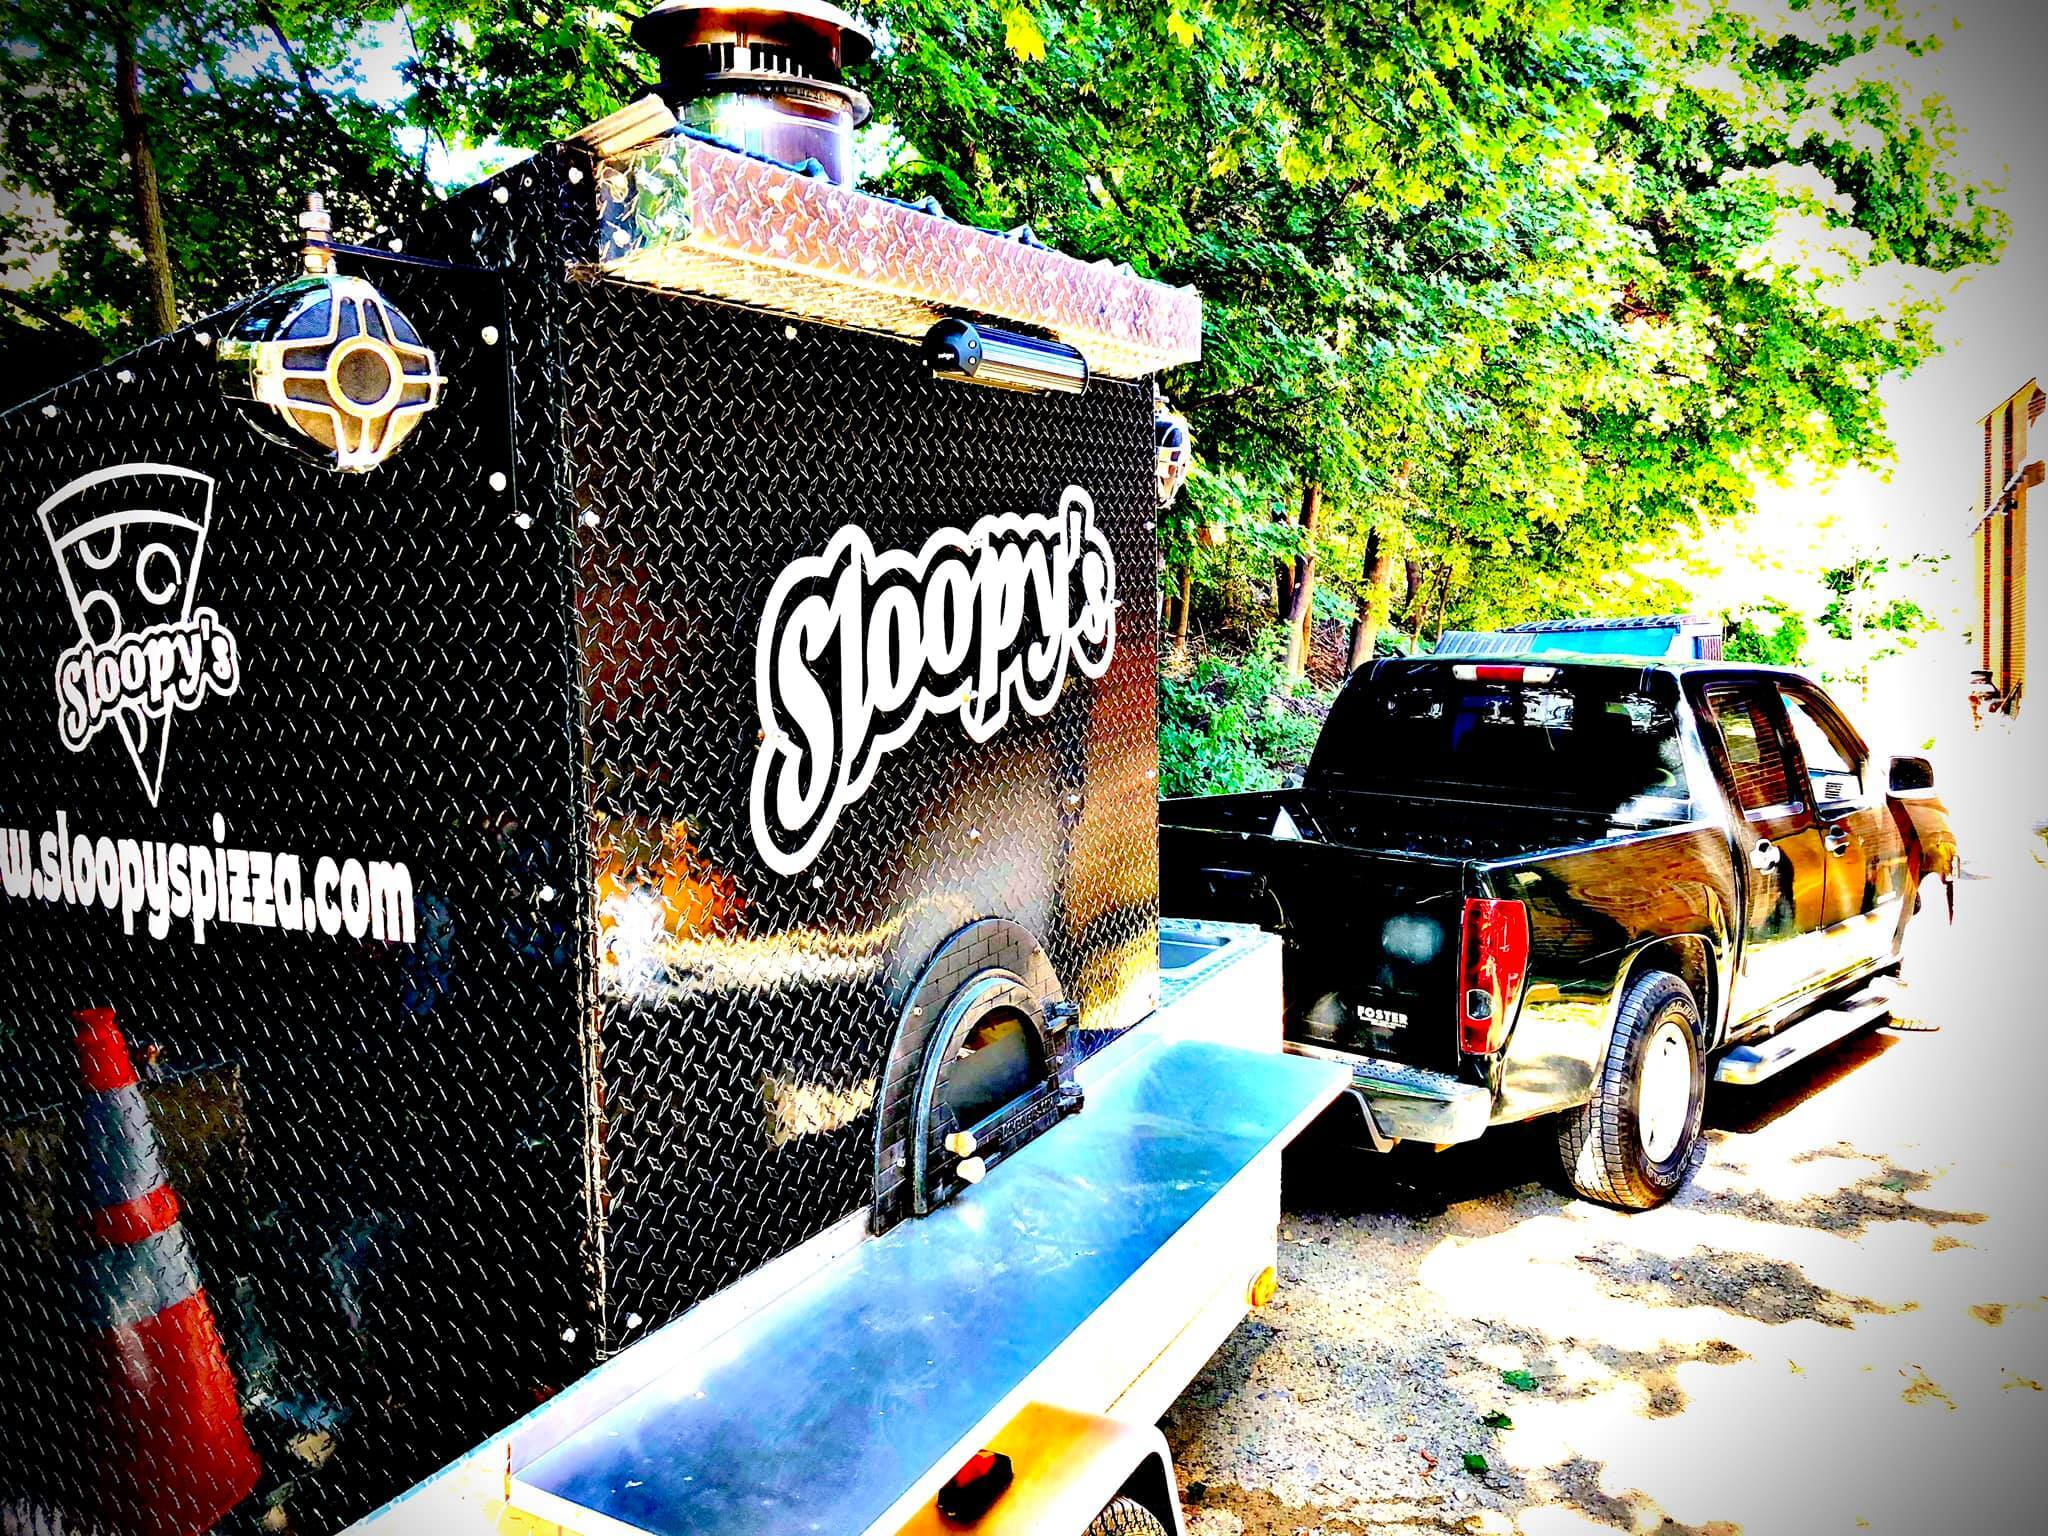 the sloopy's mobile pizza oven